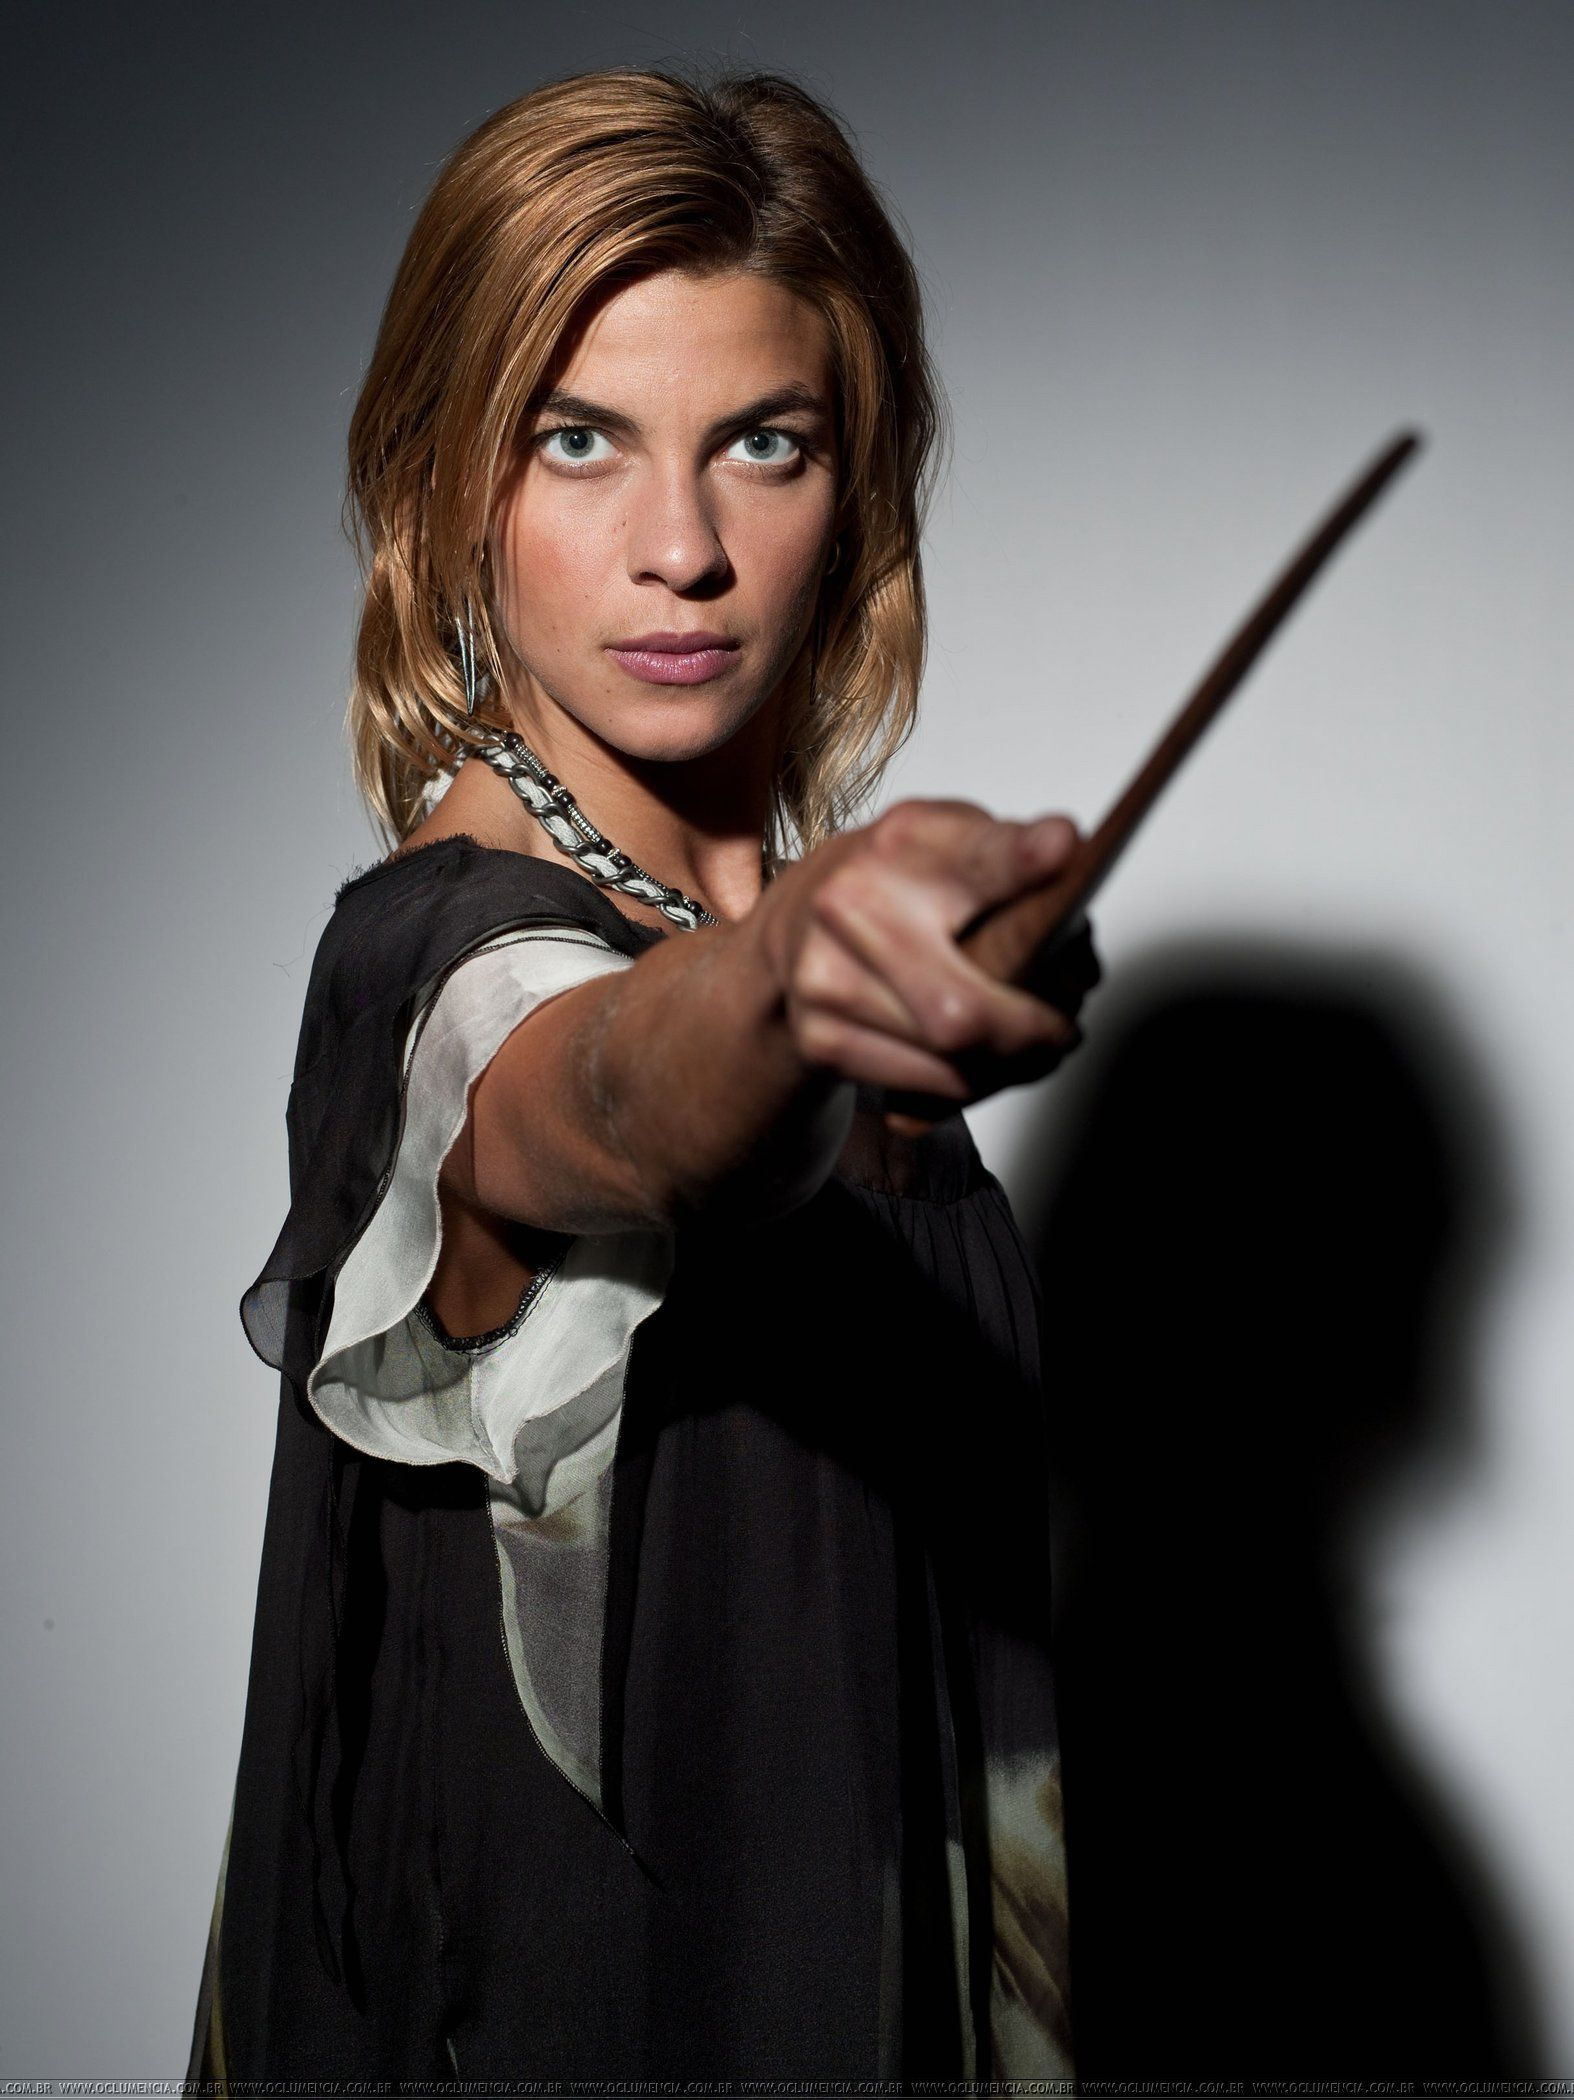 natalia tena music video